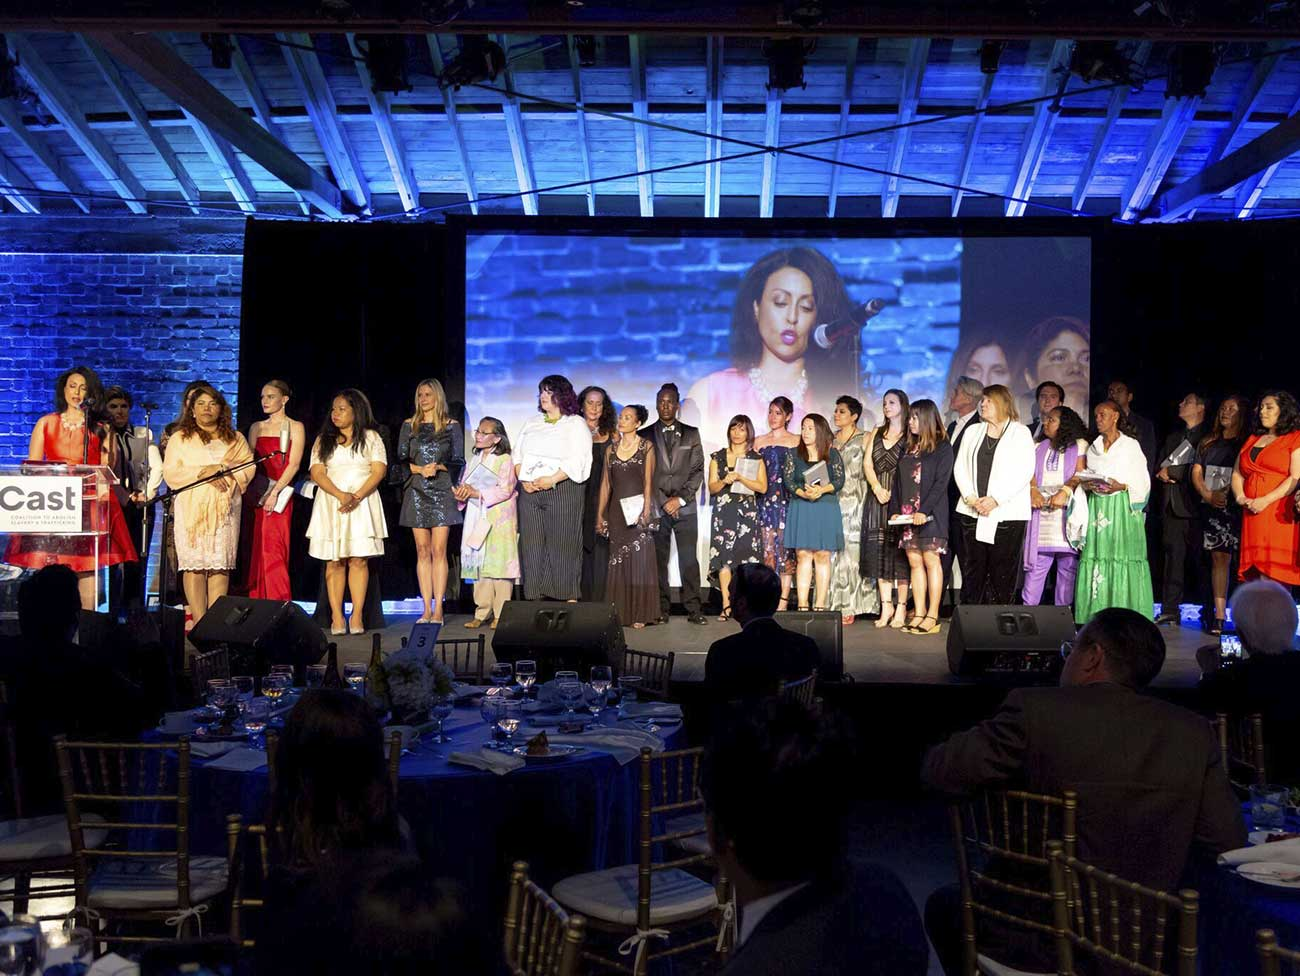 CAST recognized 20 honorees at its 20th anniversary event